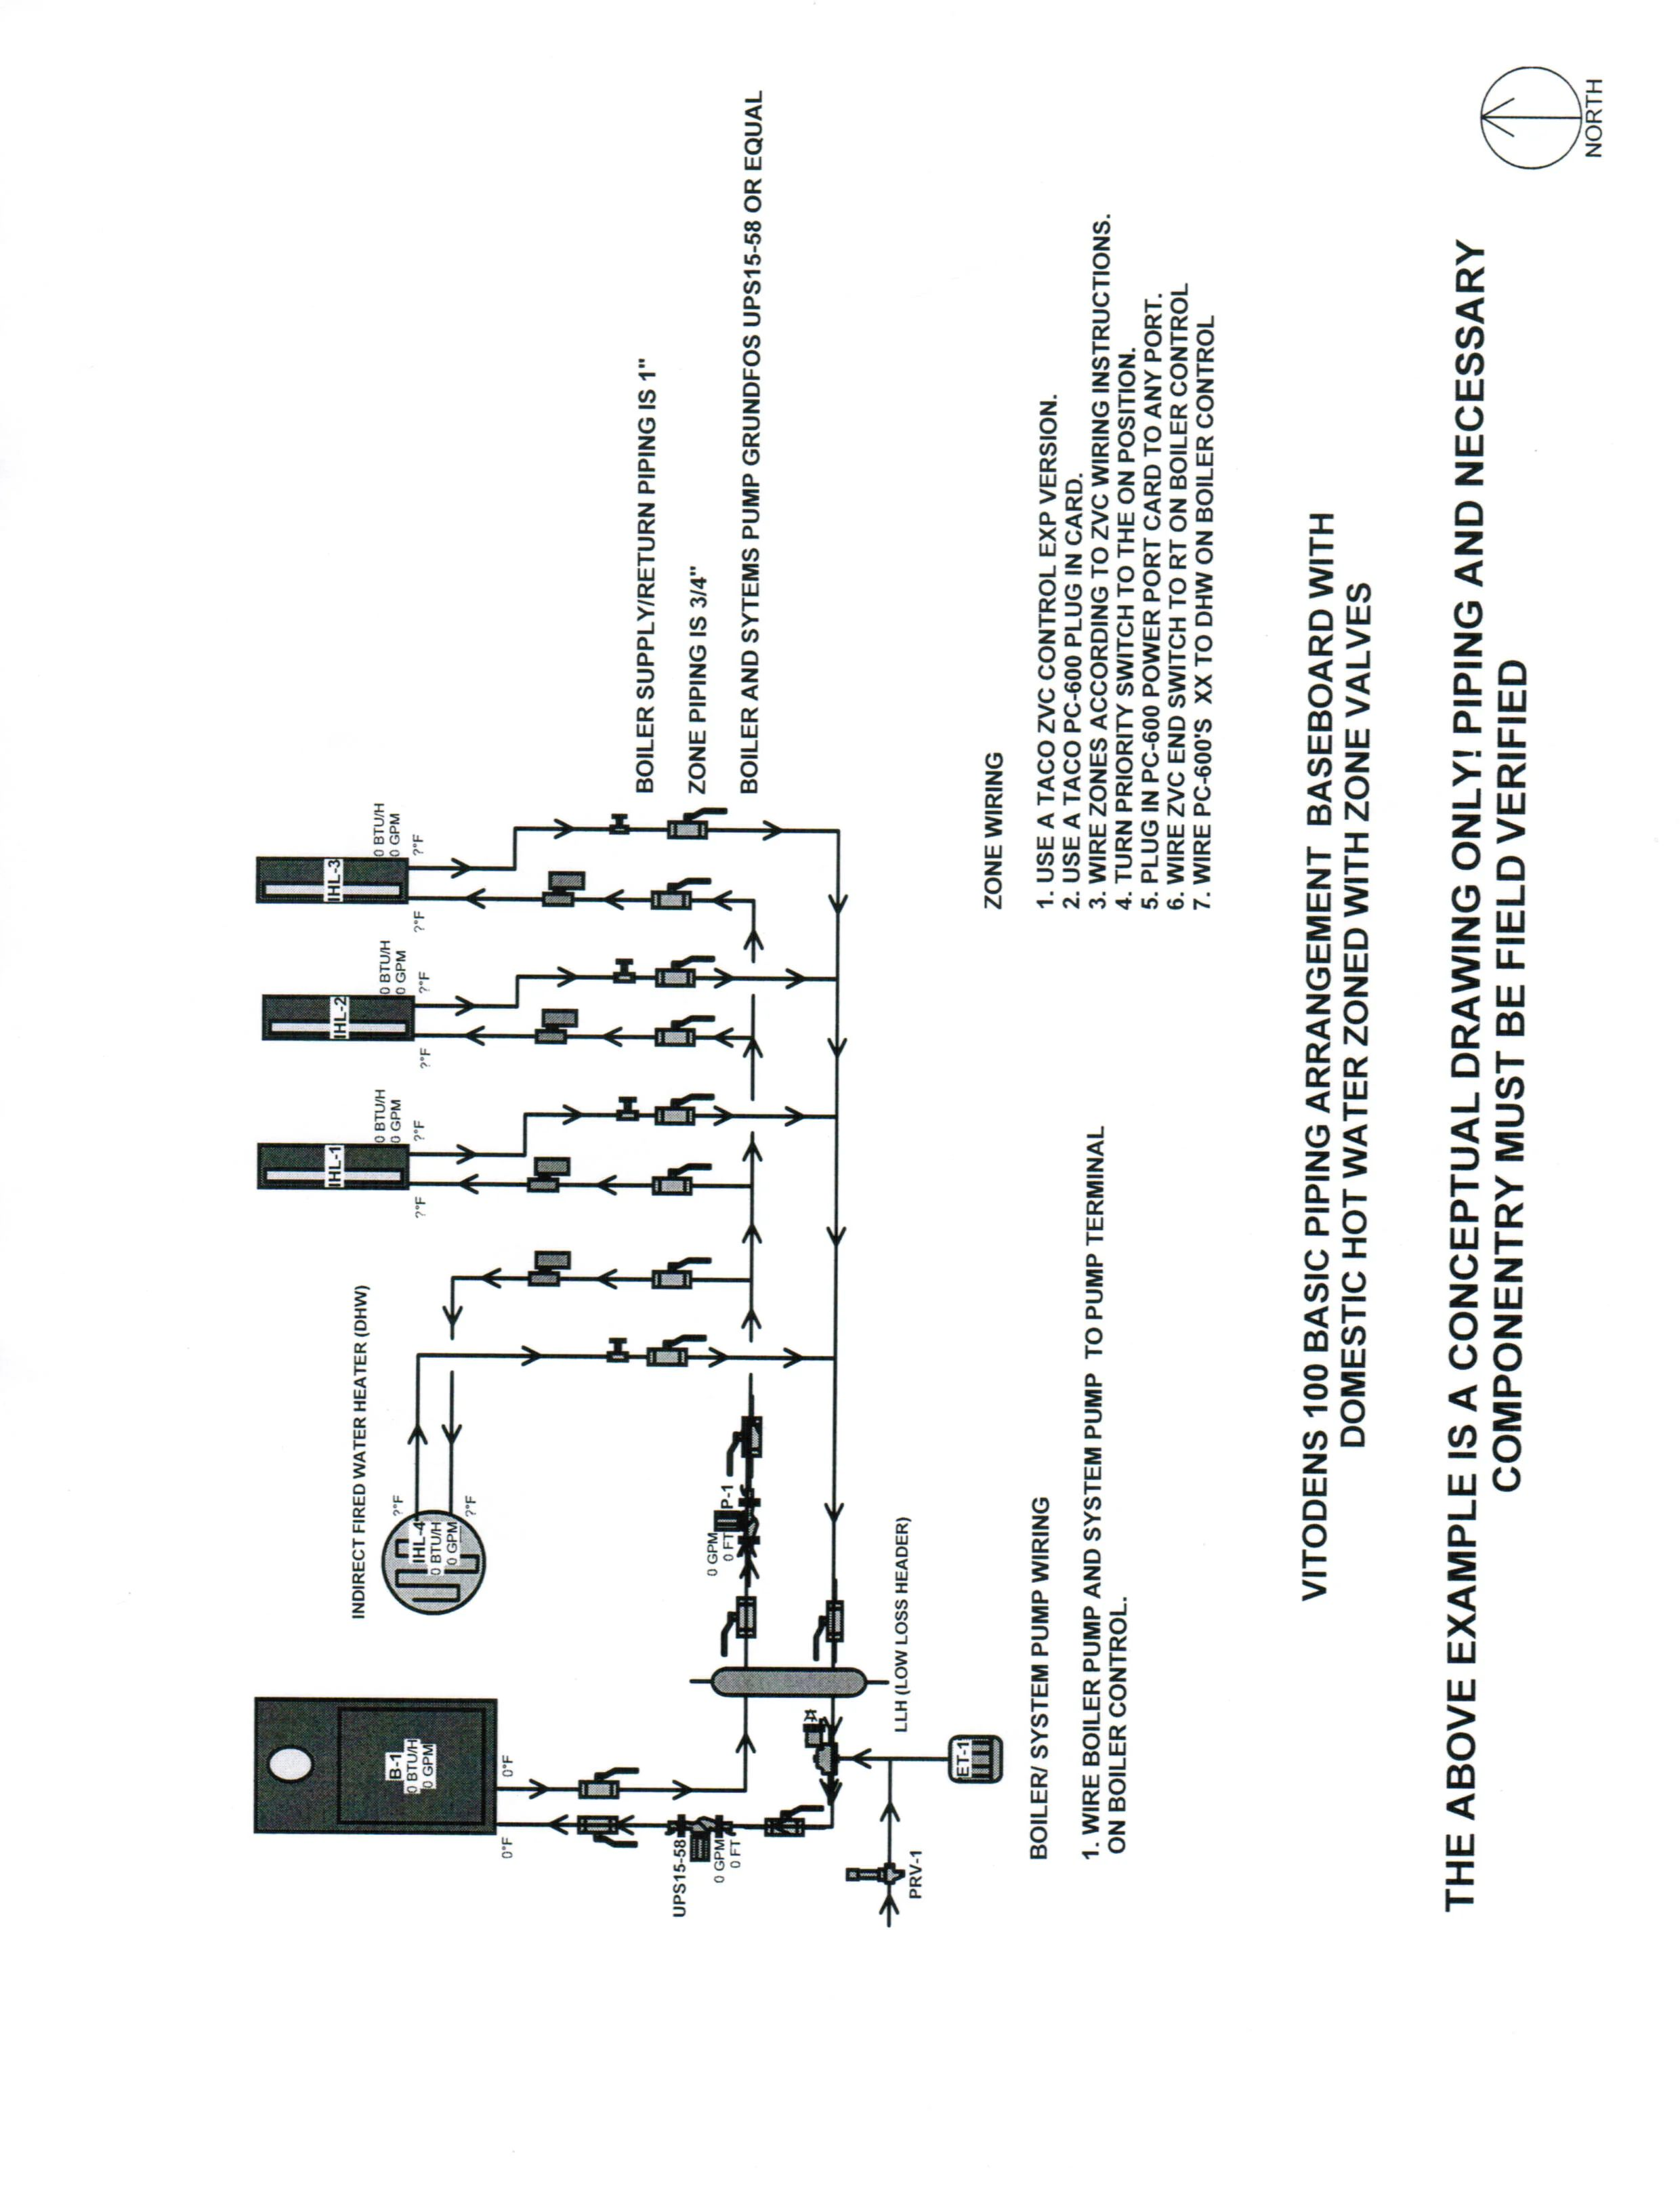 water heat zone valve on thermostat for baseboard heat wiring diagram